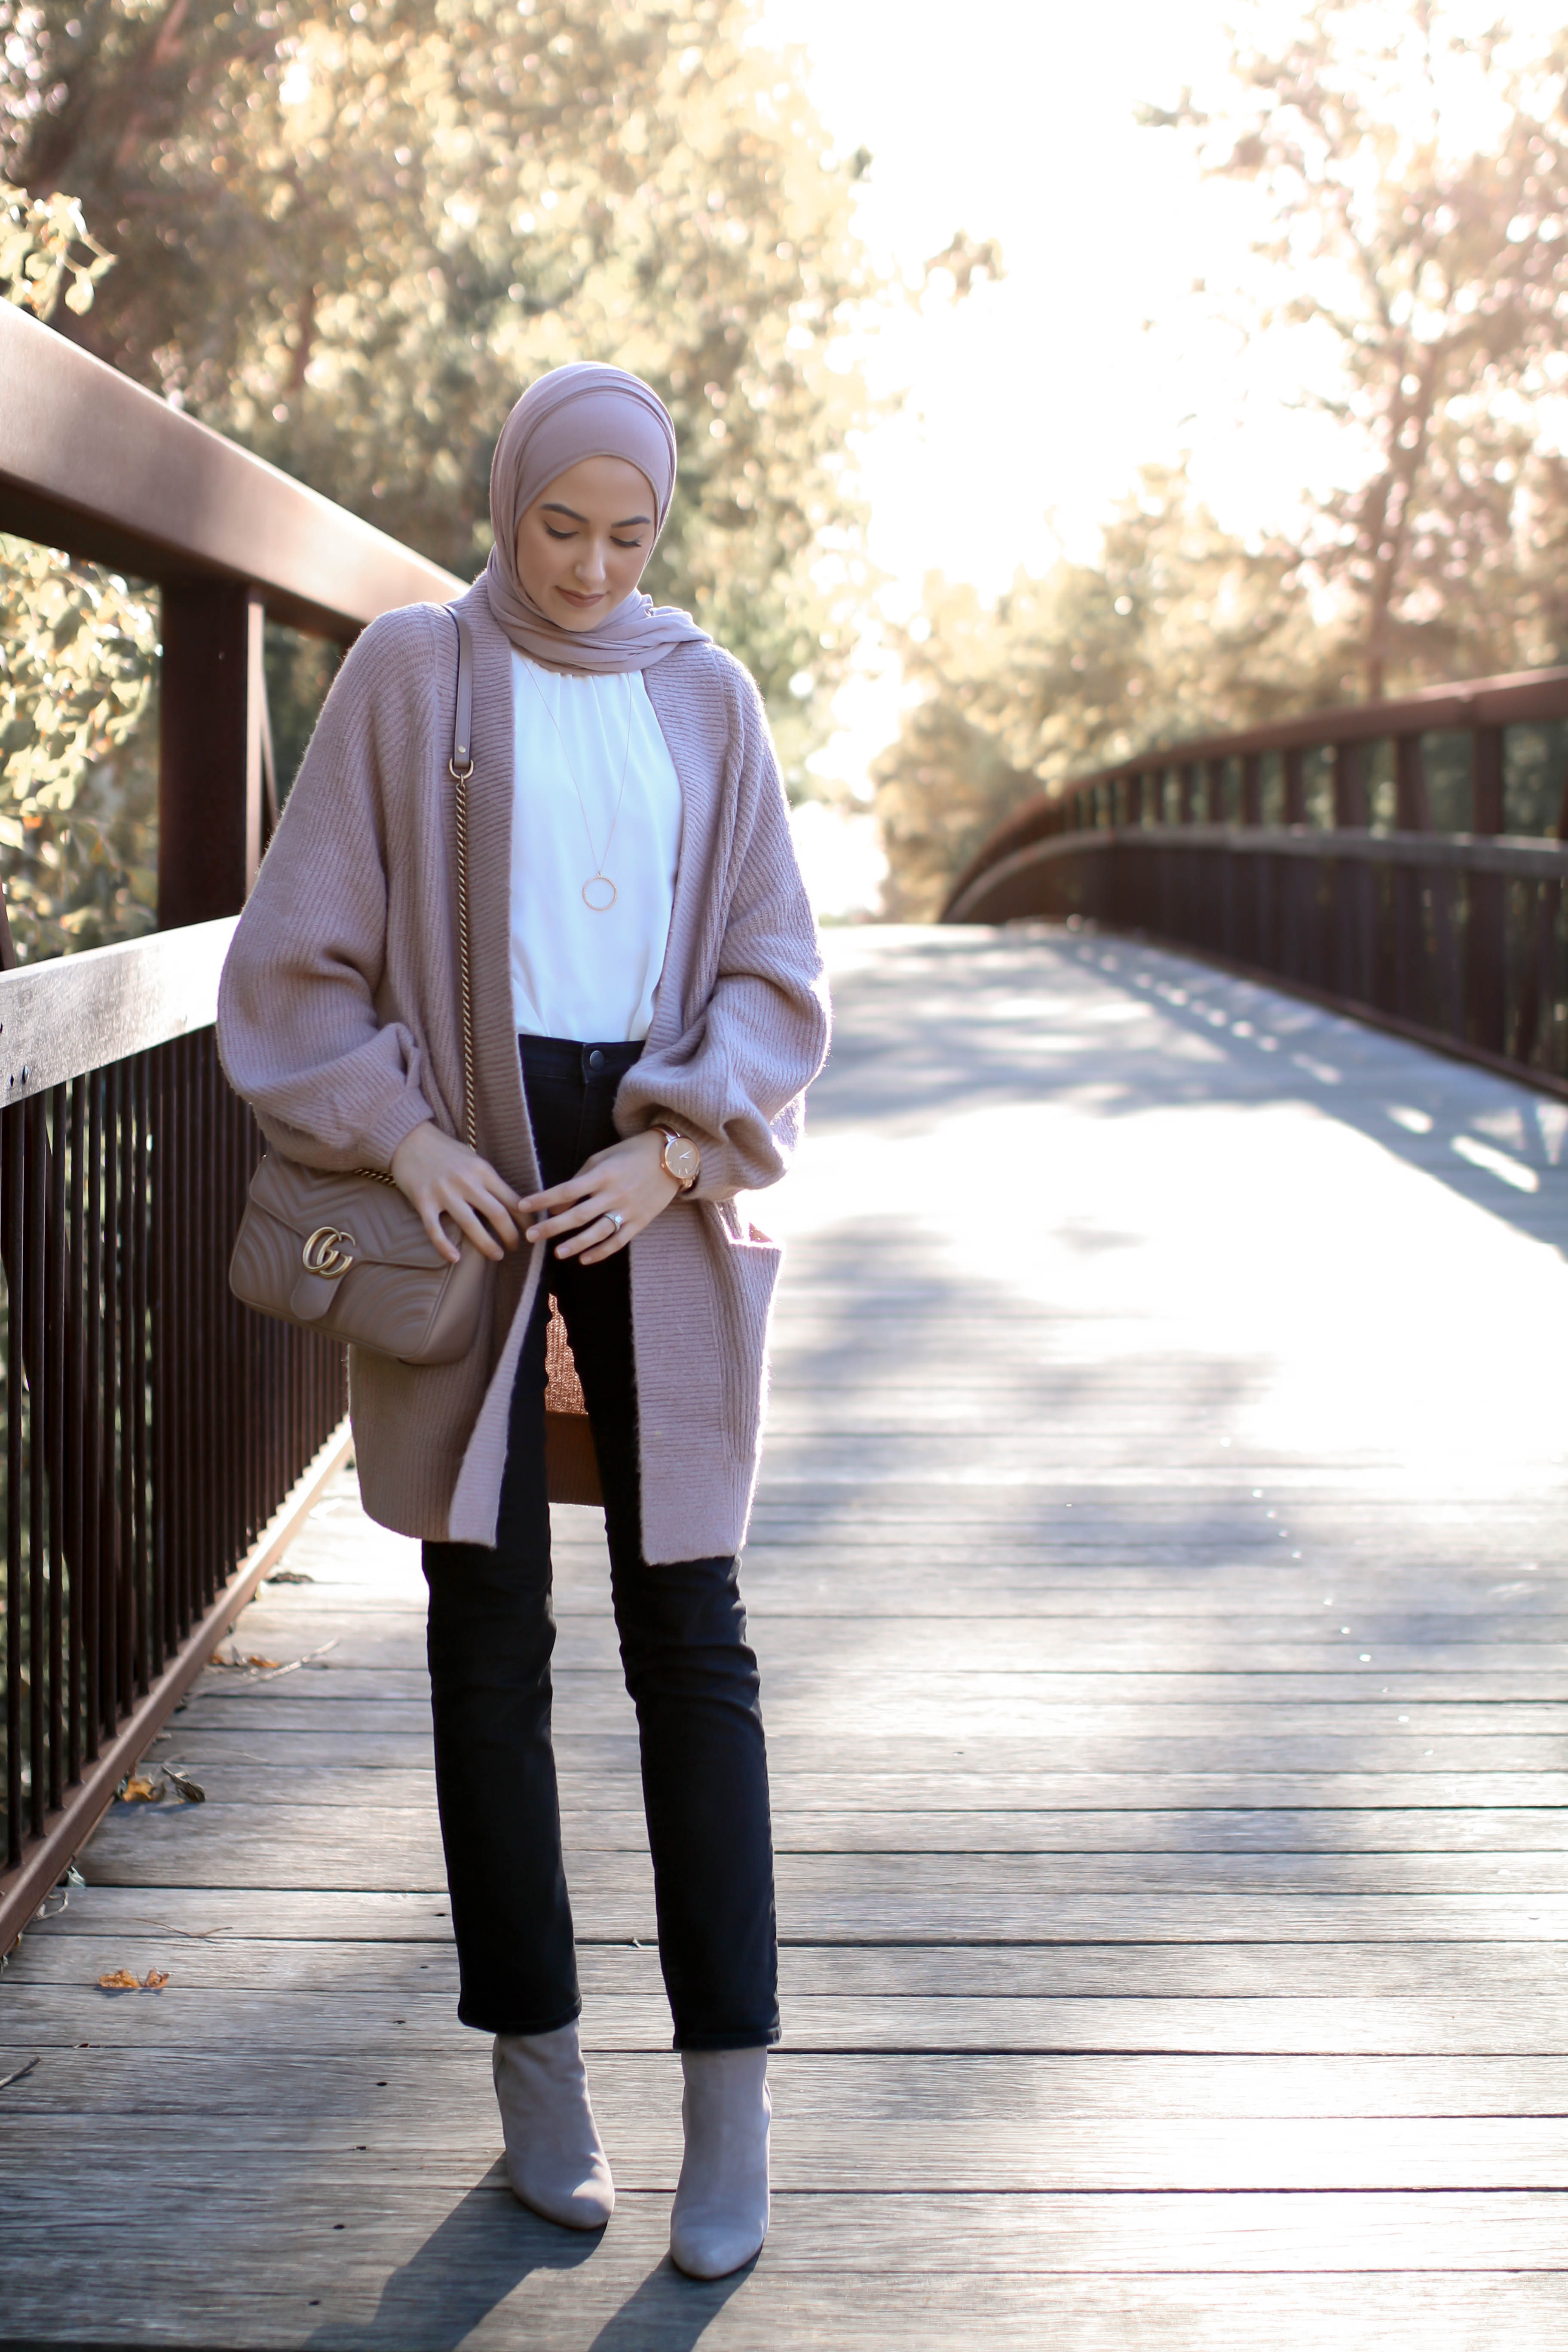 With Love Leena Page 2 A Fashion Lifestyle Blog By